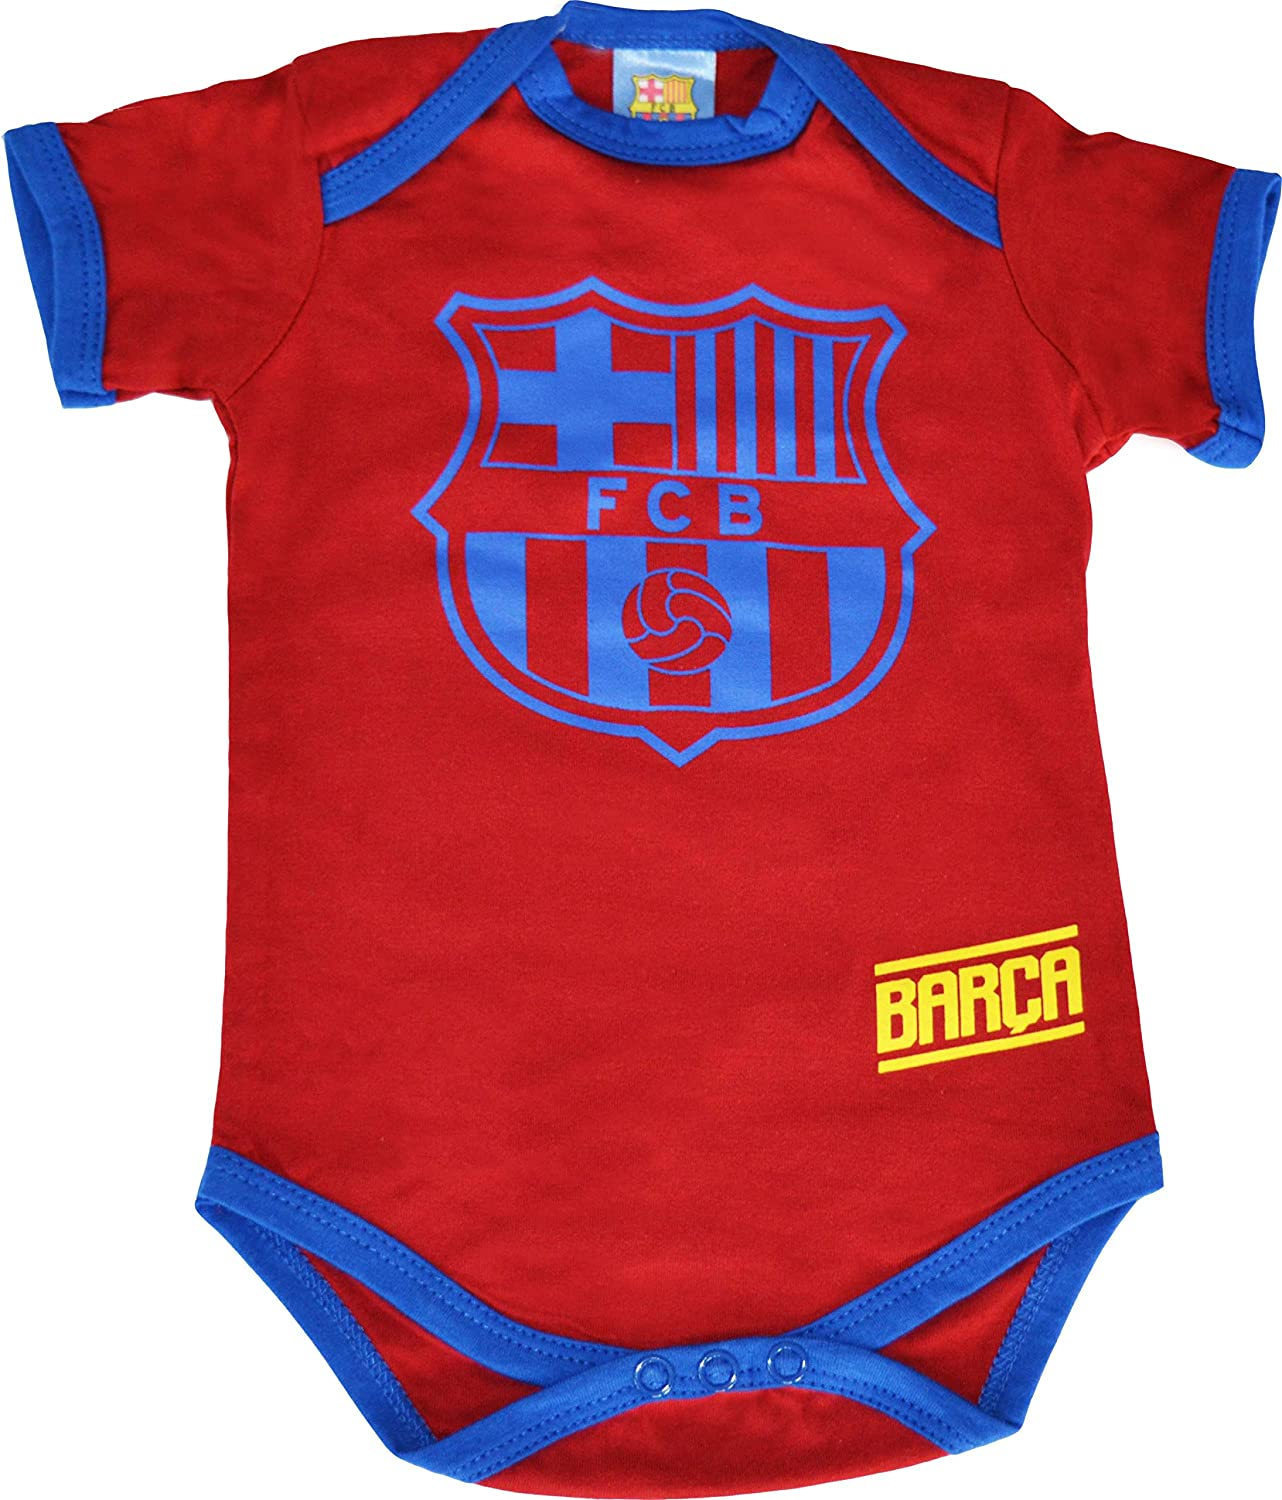 be6c6905f1acd Fc Barcelone 2 x Body Barca - Collection Officielle Taille bébé garçon   Amazon.fr  Sports et Loisirs